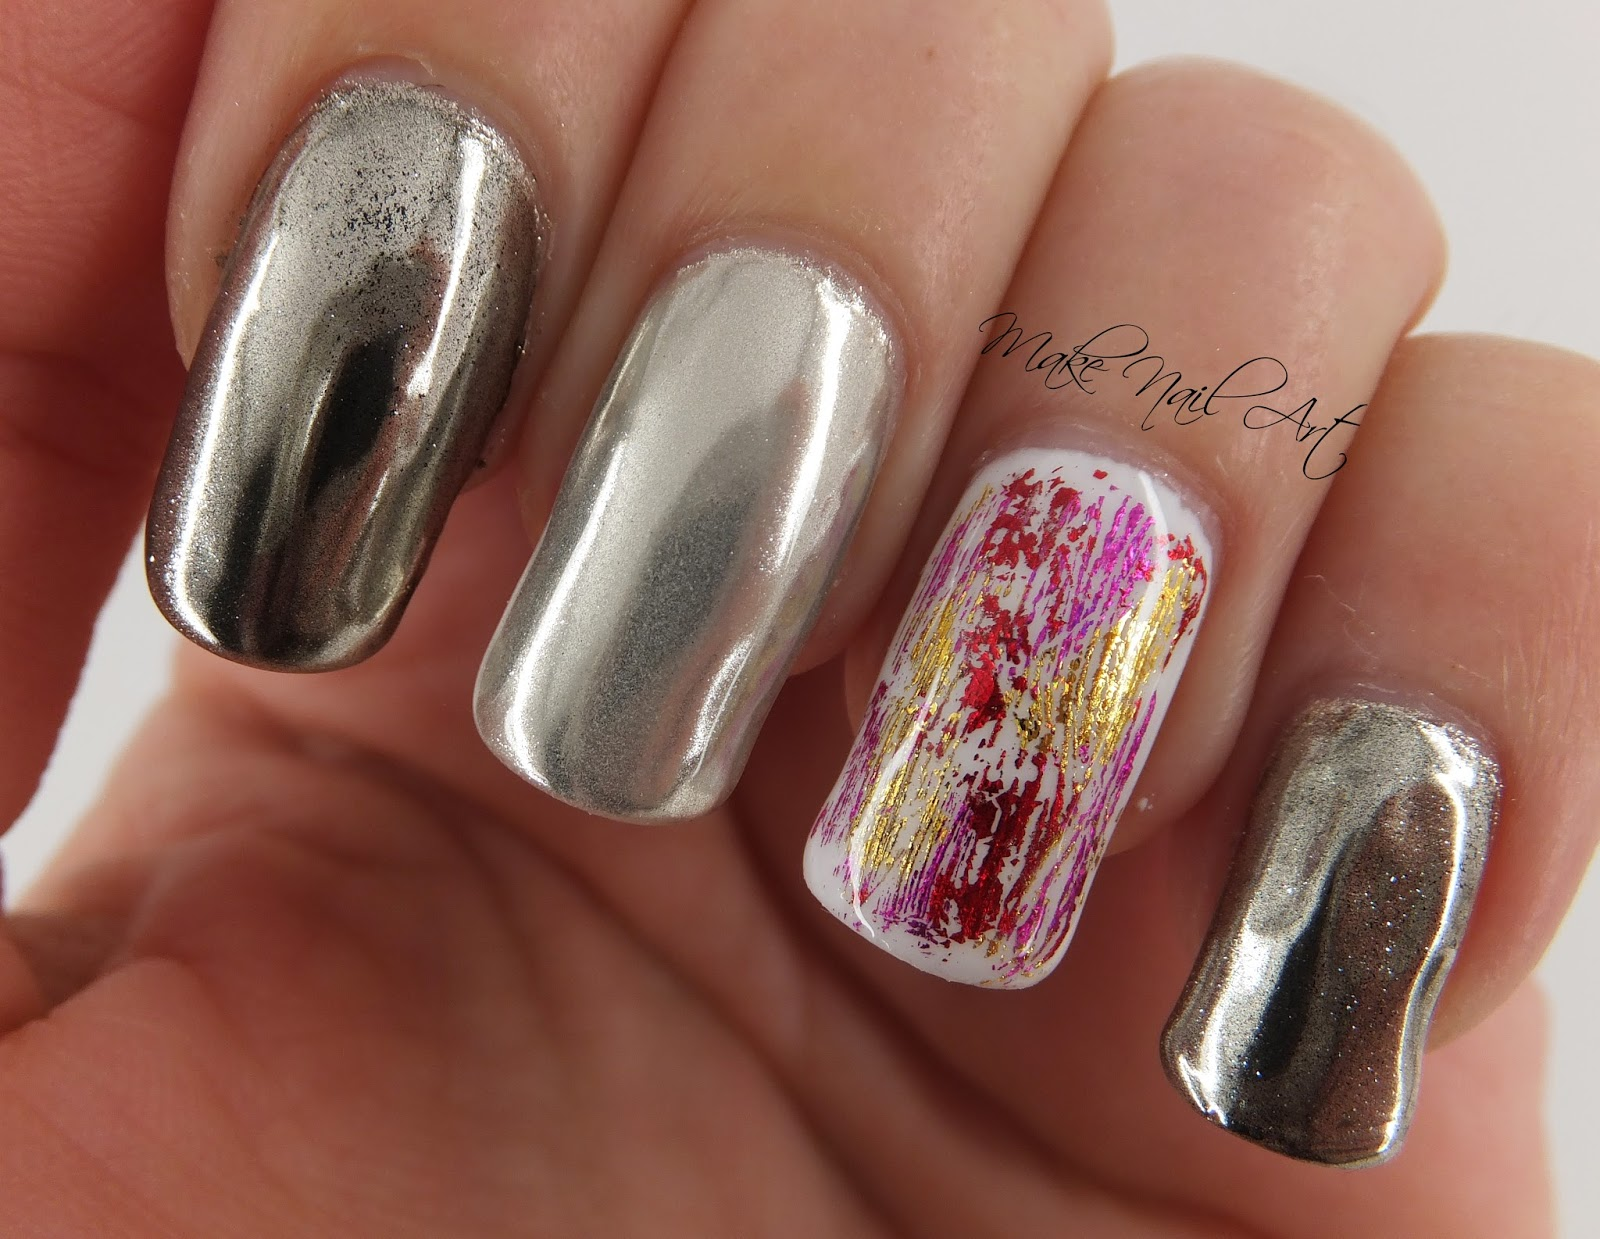 Make Nail Art: Mirror Powder And Foil Gel Polish Nails Nail Art ...